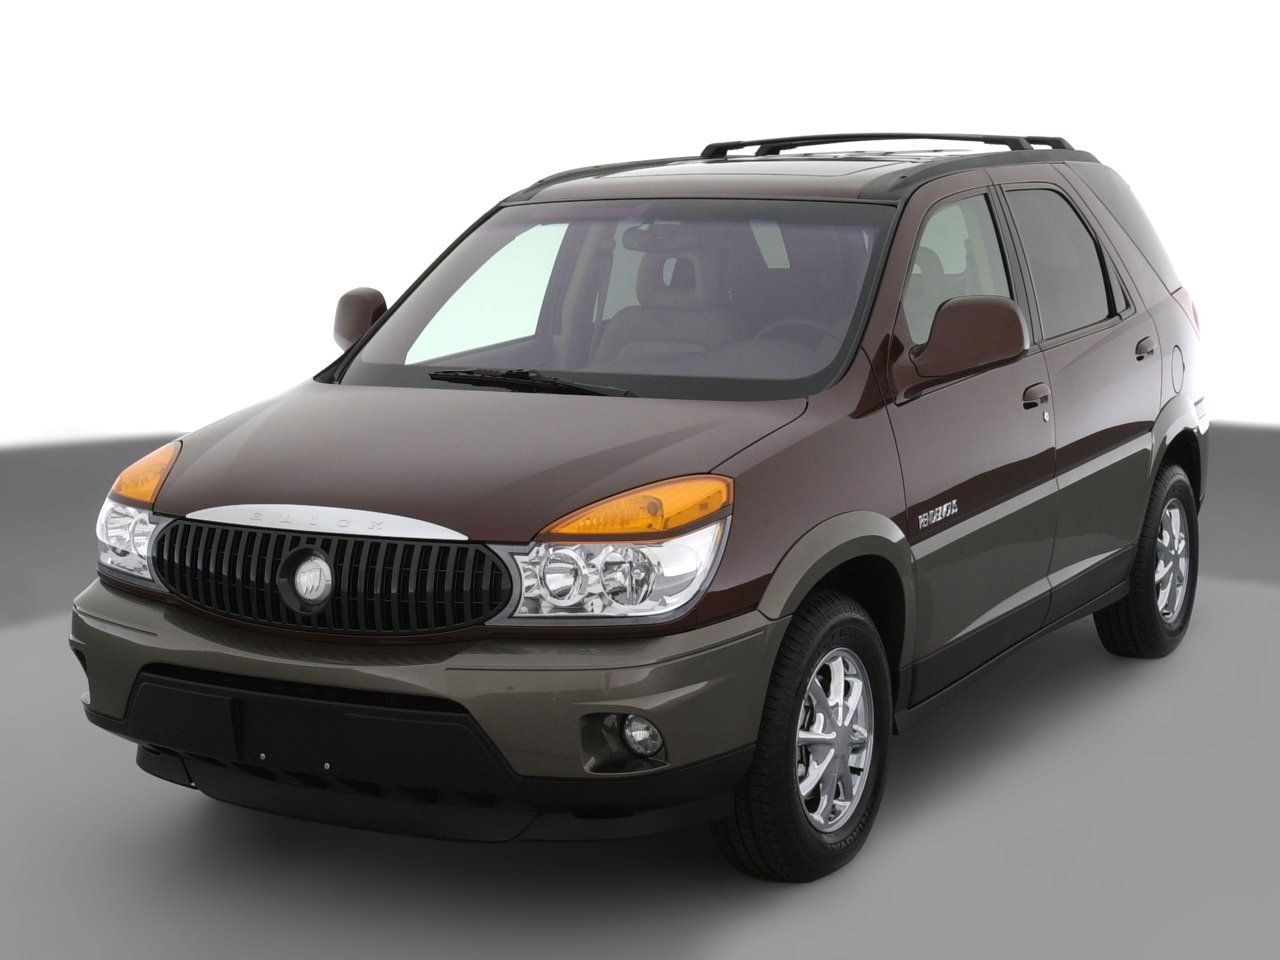 2003 Buick Rendezvous CX, All Wheel Drive Buick